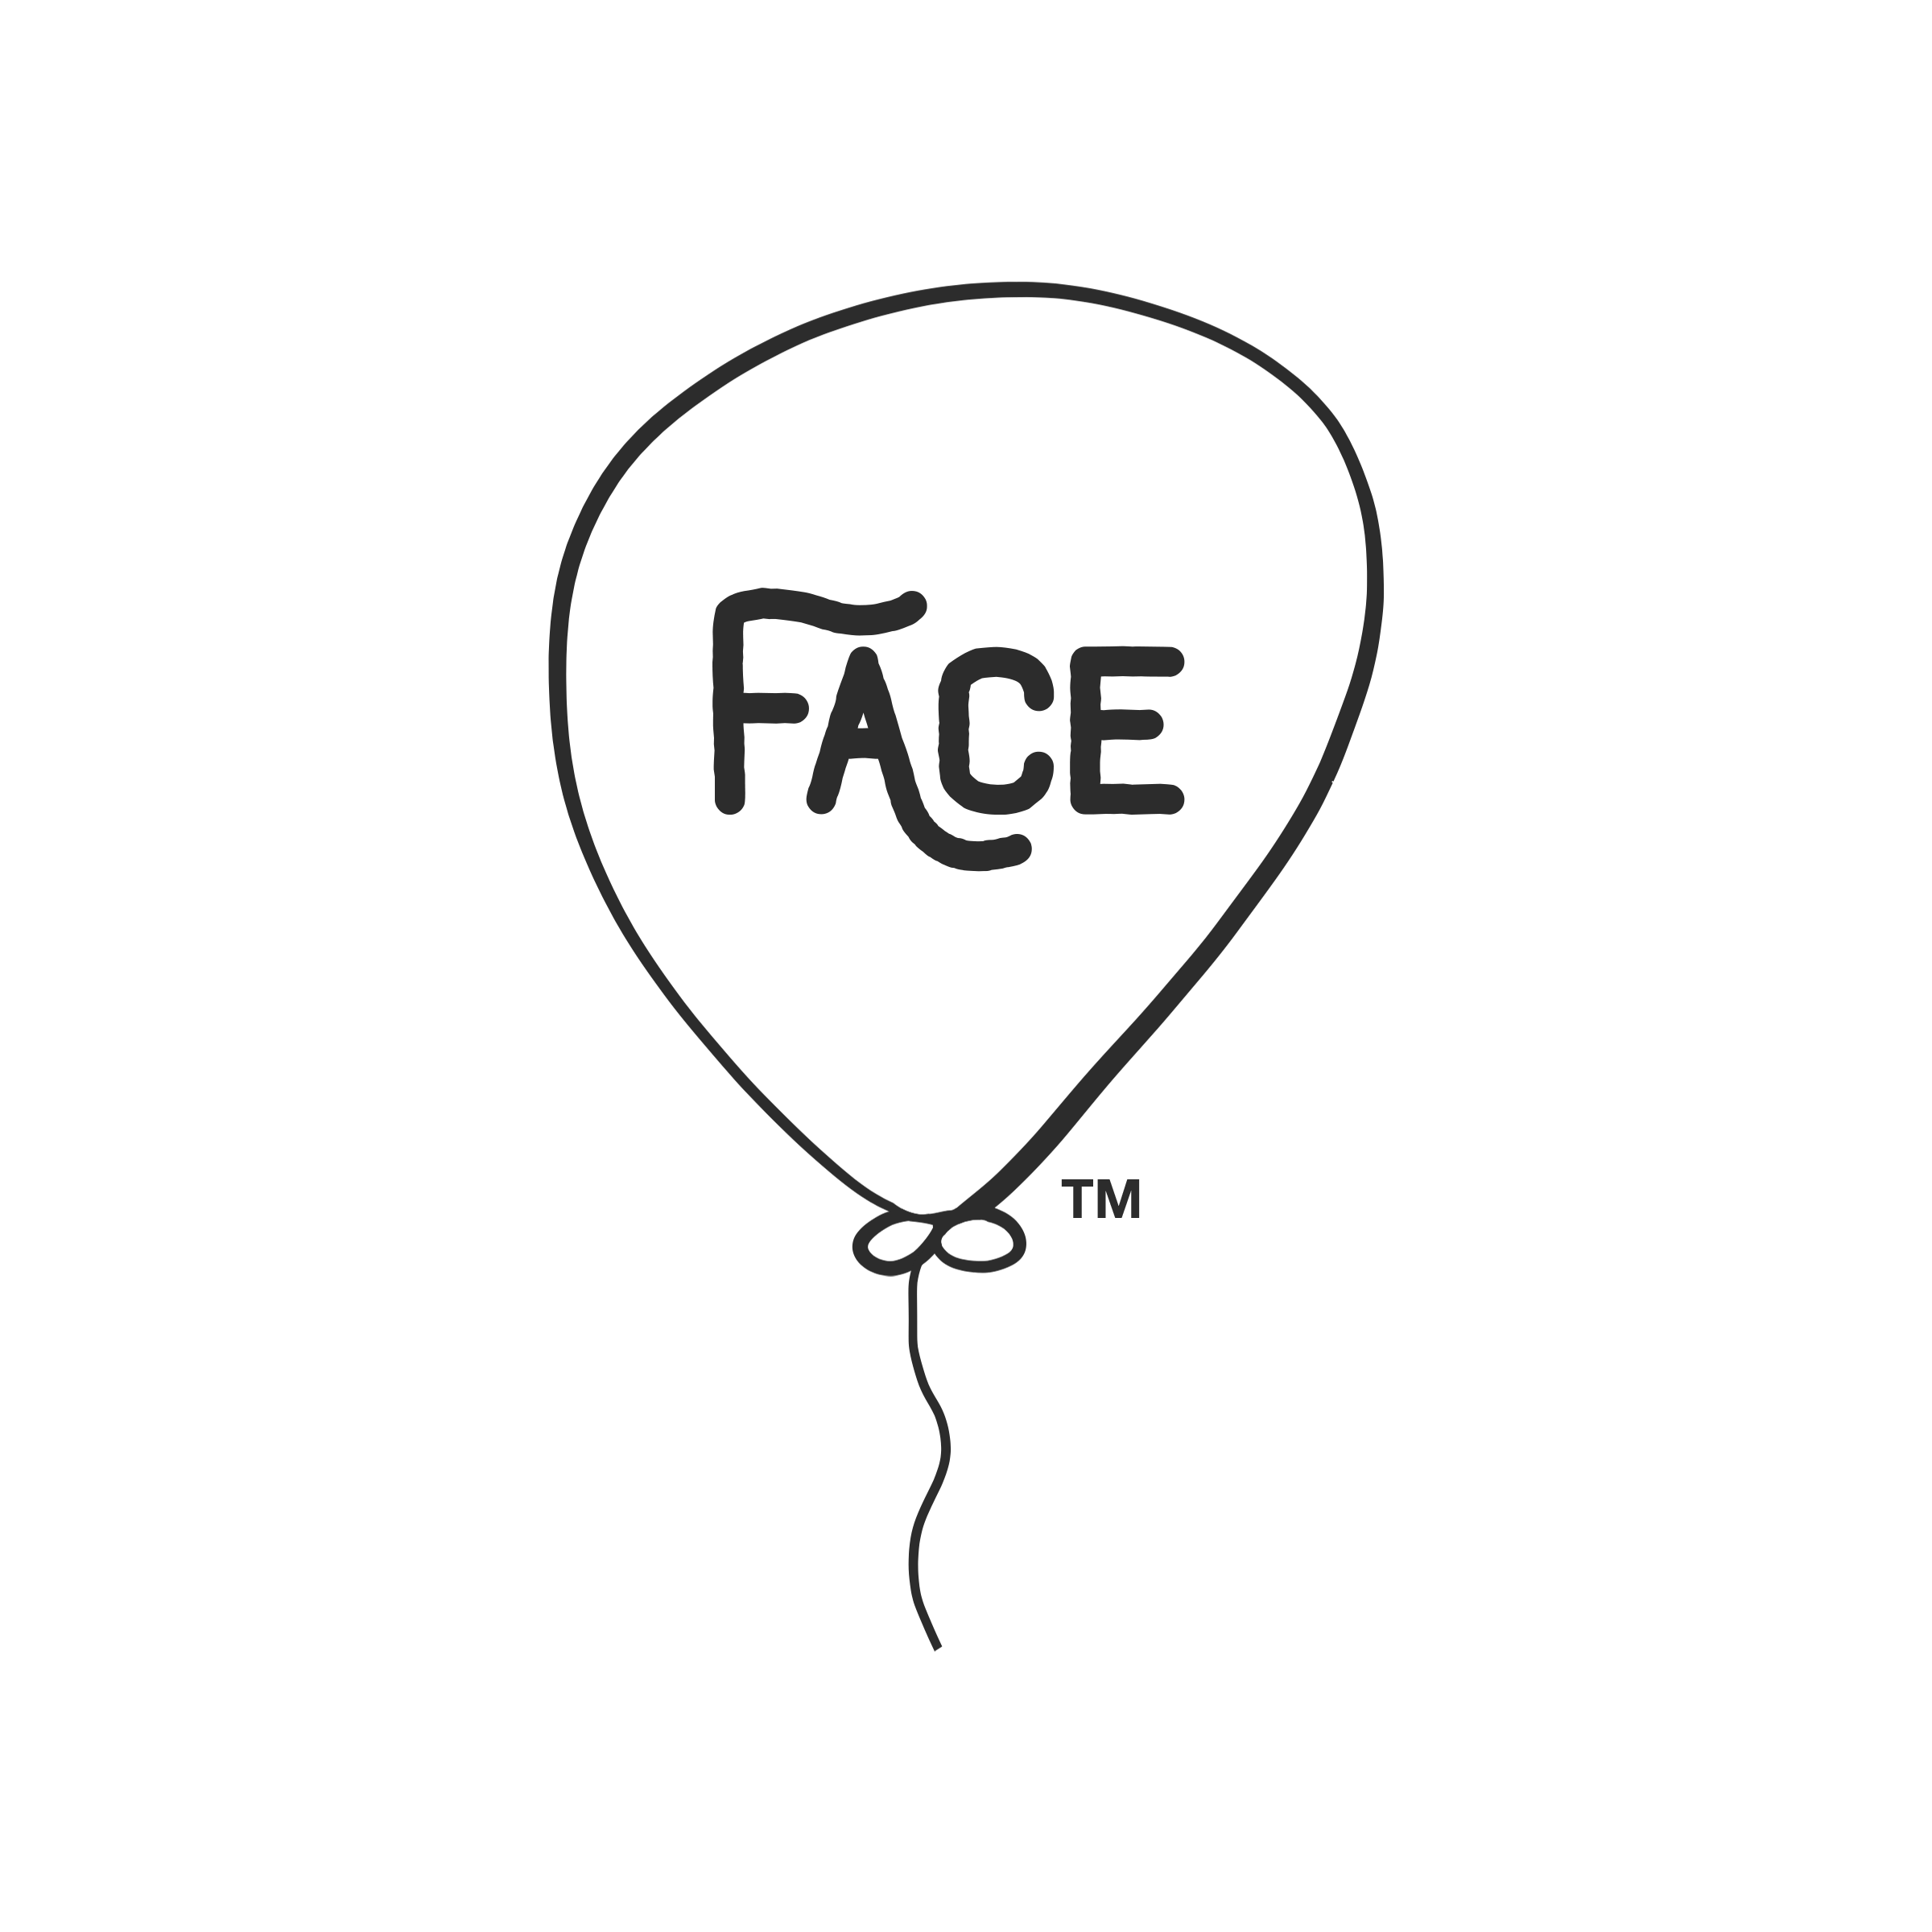 Face-Balloon.png